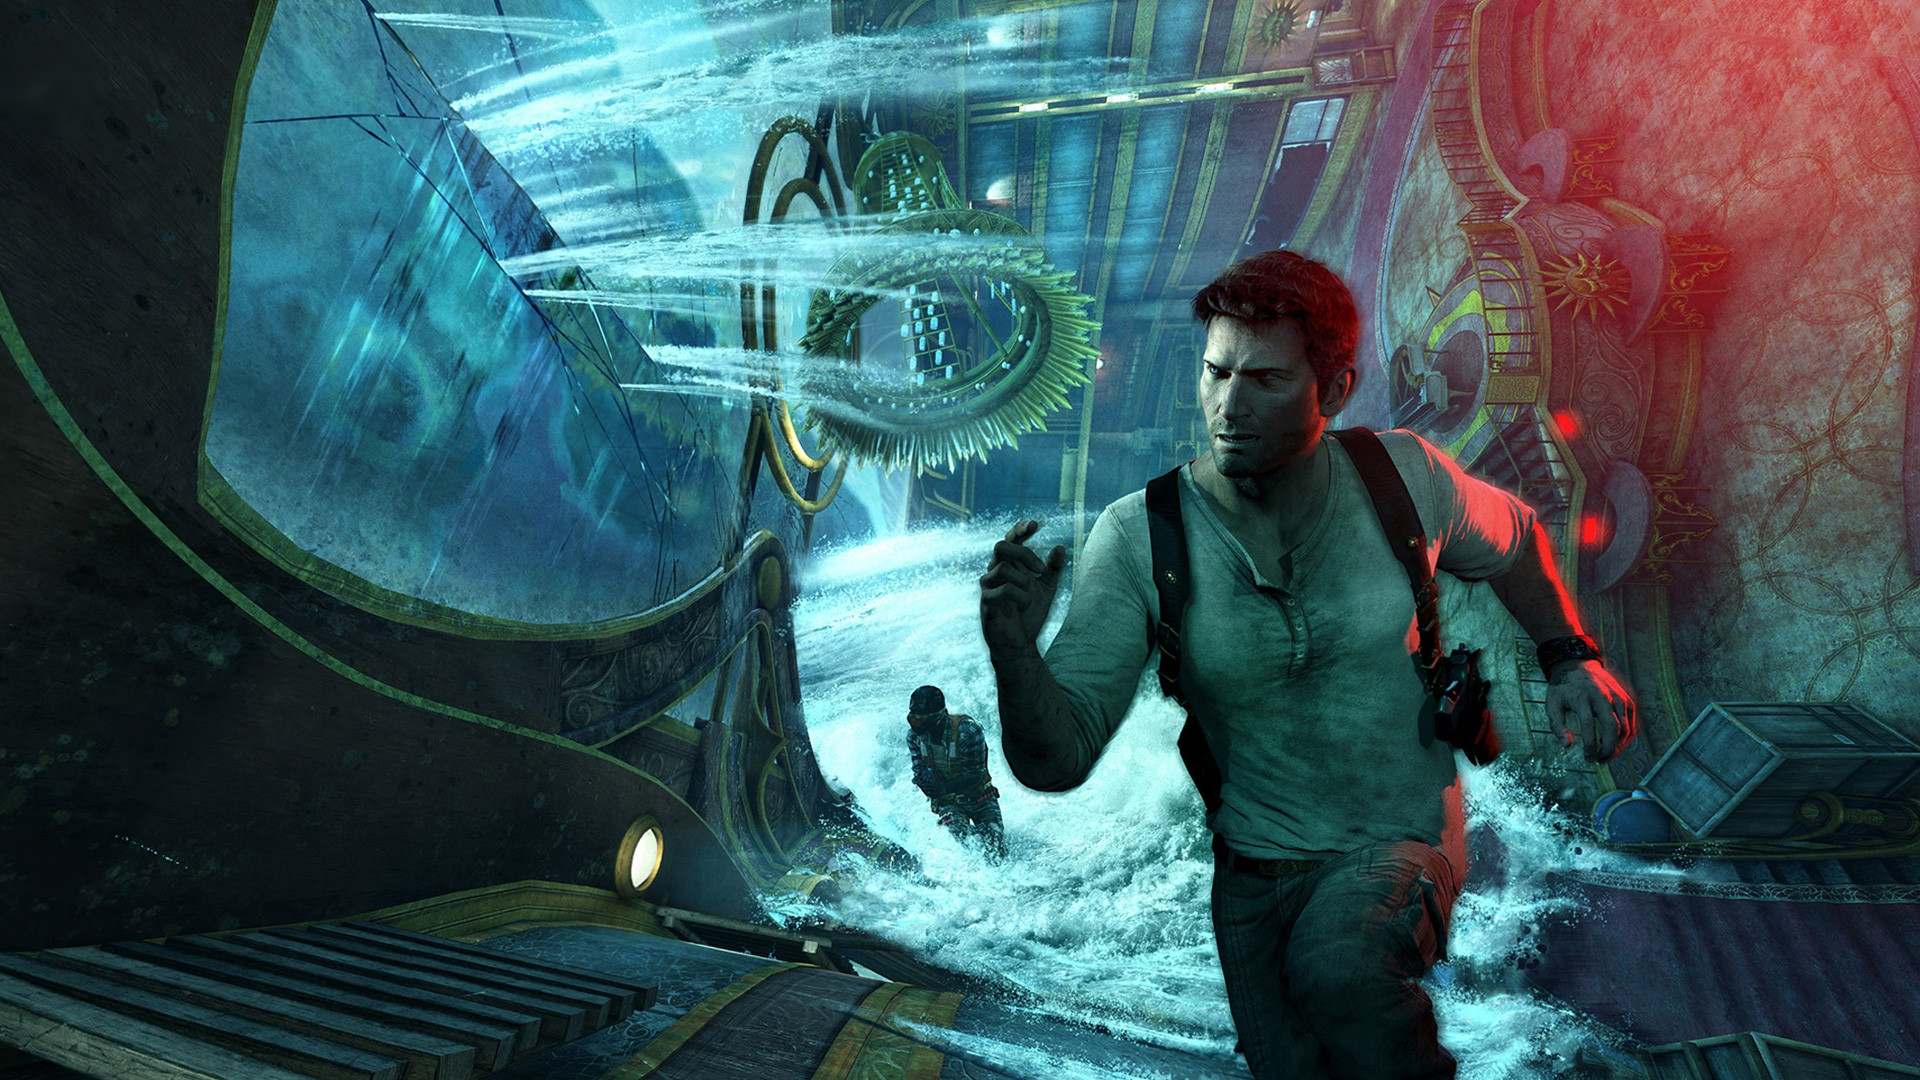 Uncharted 3 Drakes Deception wallpaper 3 | WallpapersBQ Uncharted 3 Drakes Deception Wallpaper